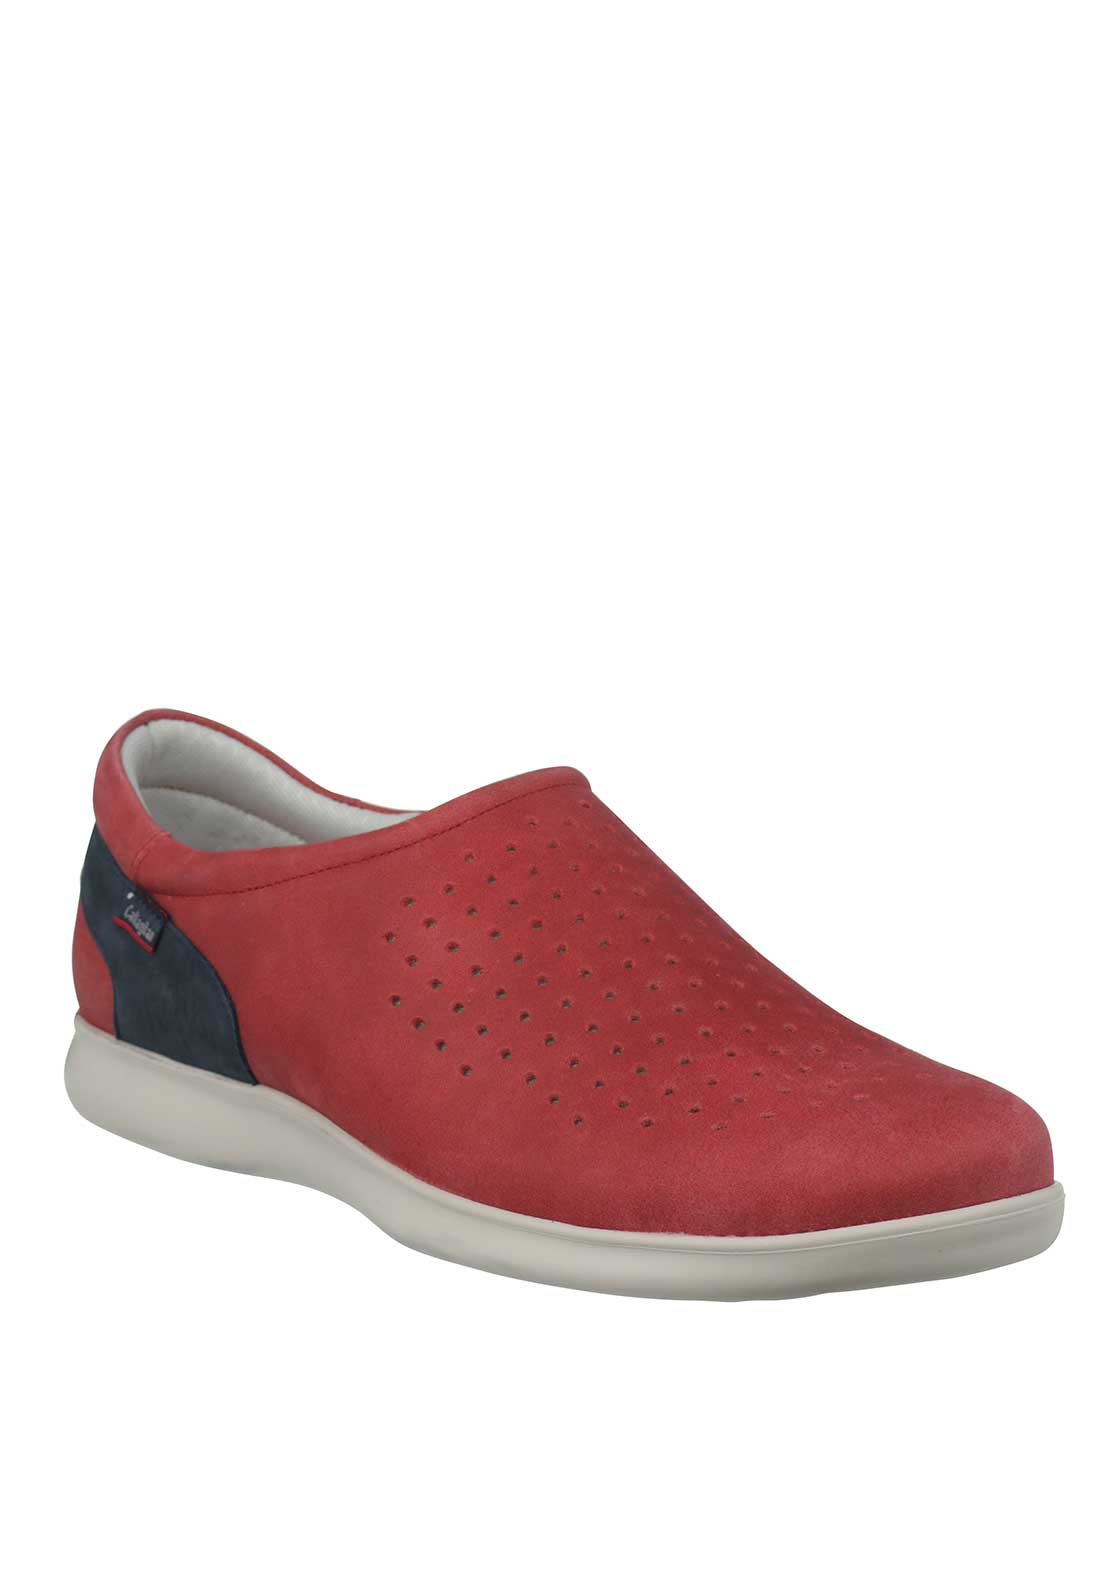 Callaghan Perforated Suede Slip On Comfort Shoe, Red